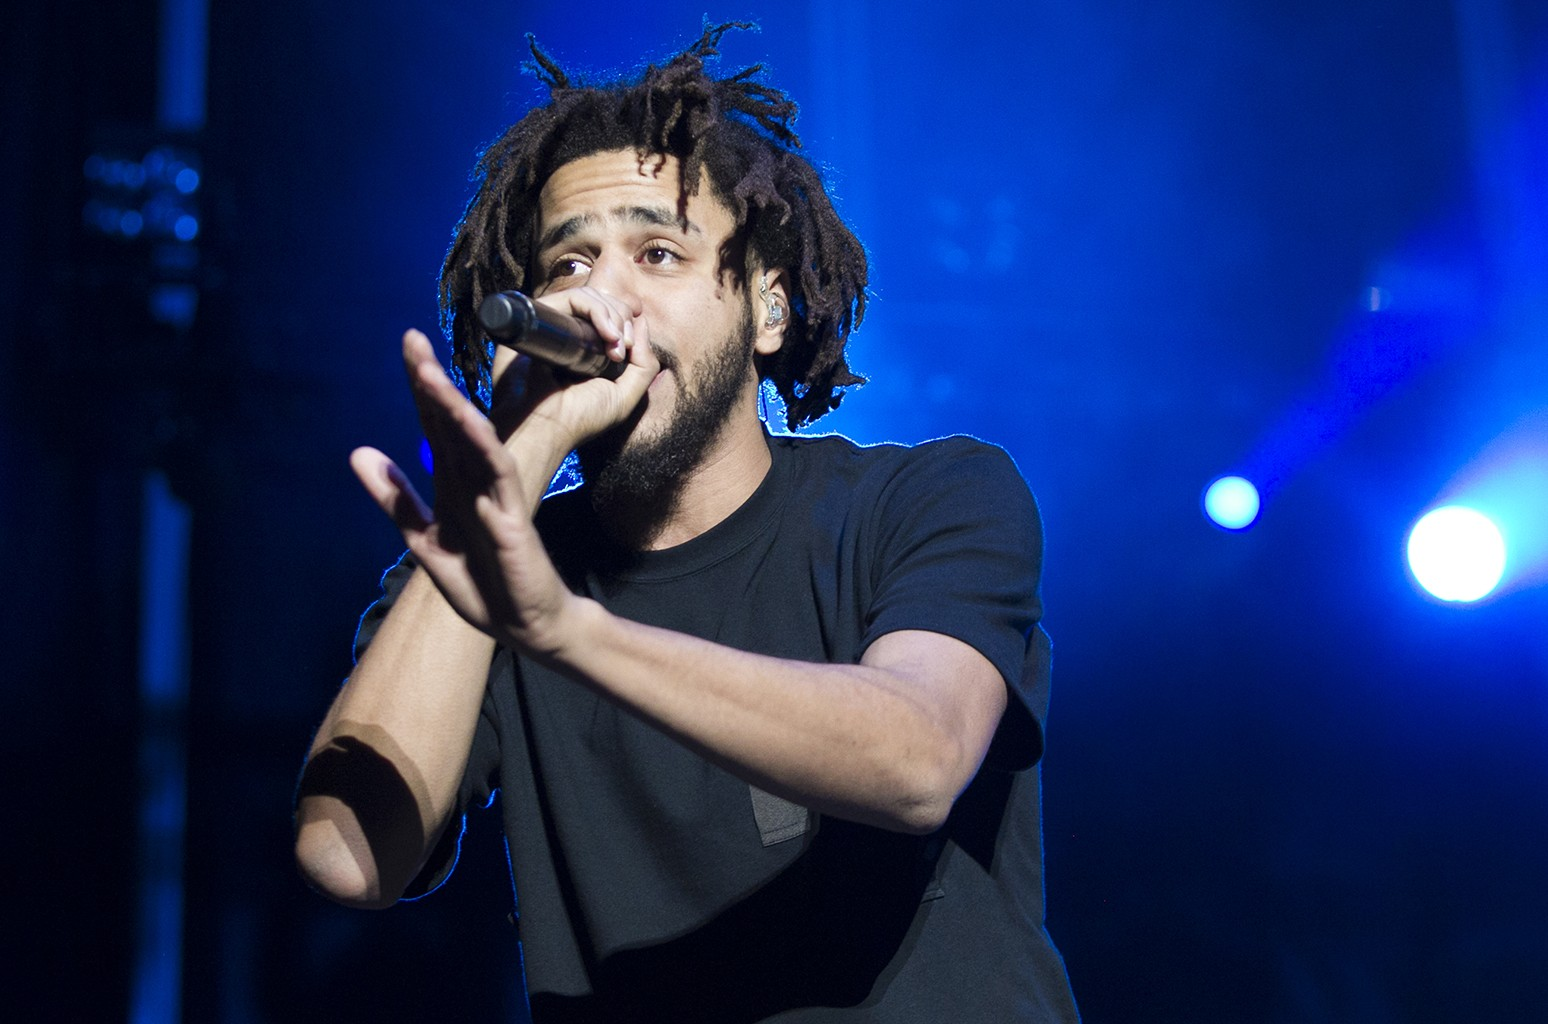 J. Cole performs during the 2016 Life Is Beautiful festival